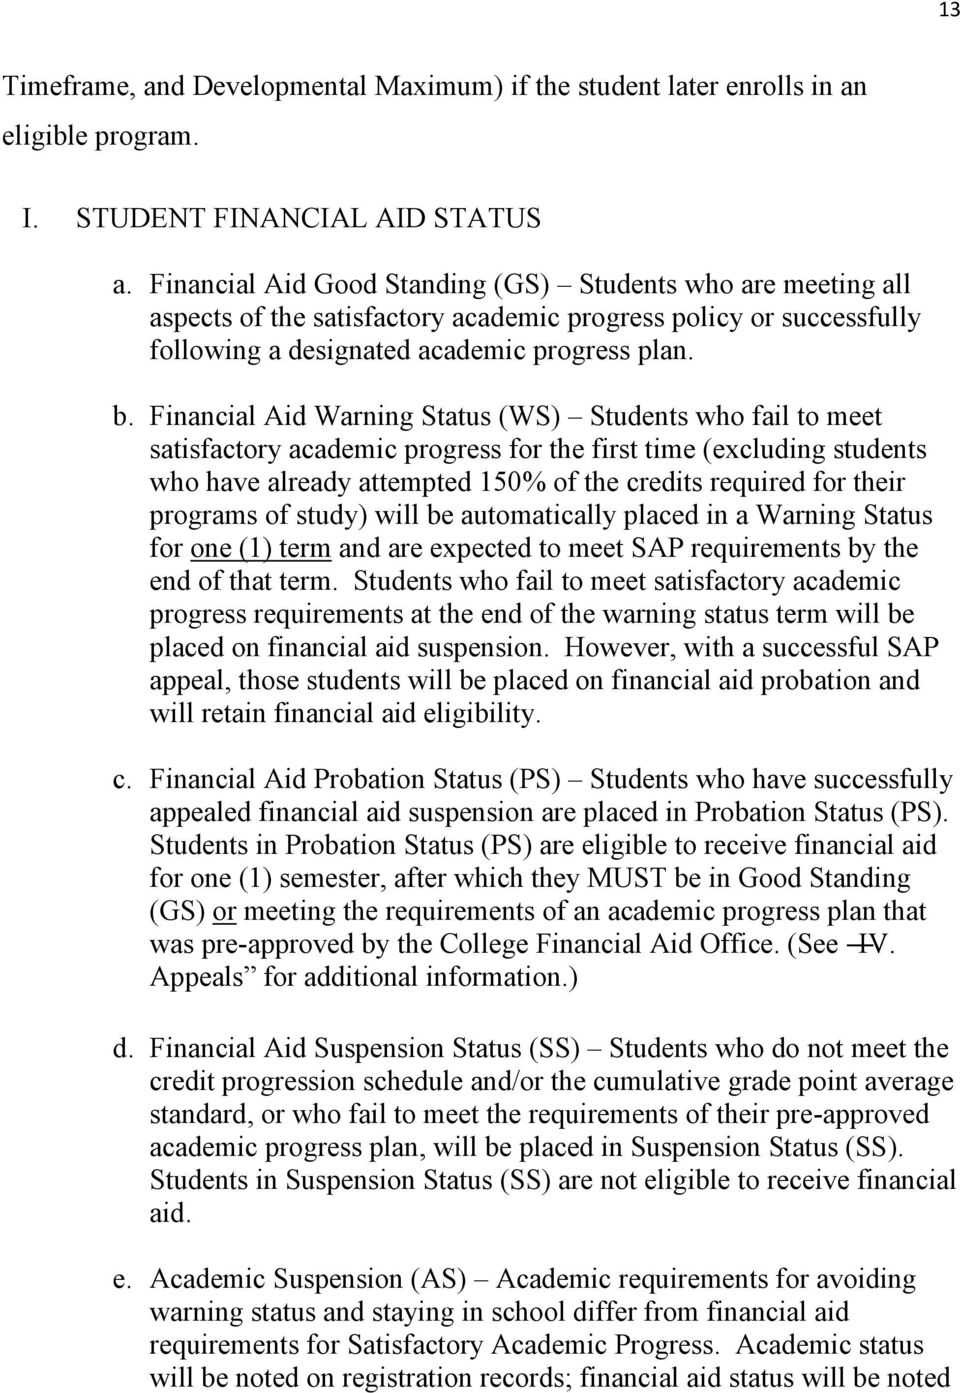 Financial Aid Warning Status (WS) Students who fail to meet satisfactory academic progress for the first time (excluding students who have already attempted 150% of the credits required for their